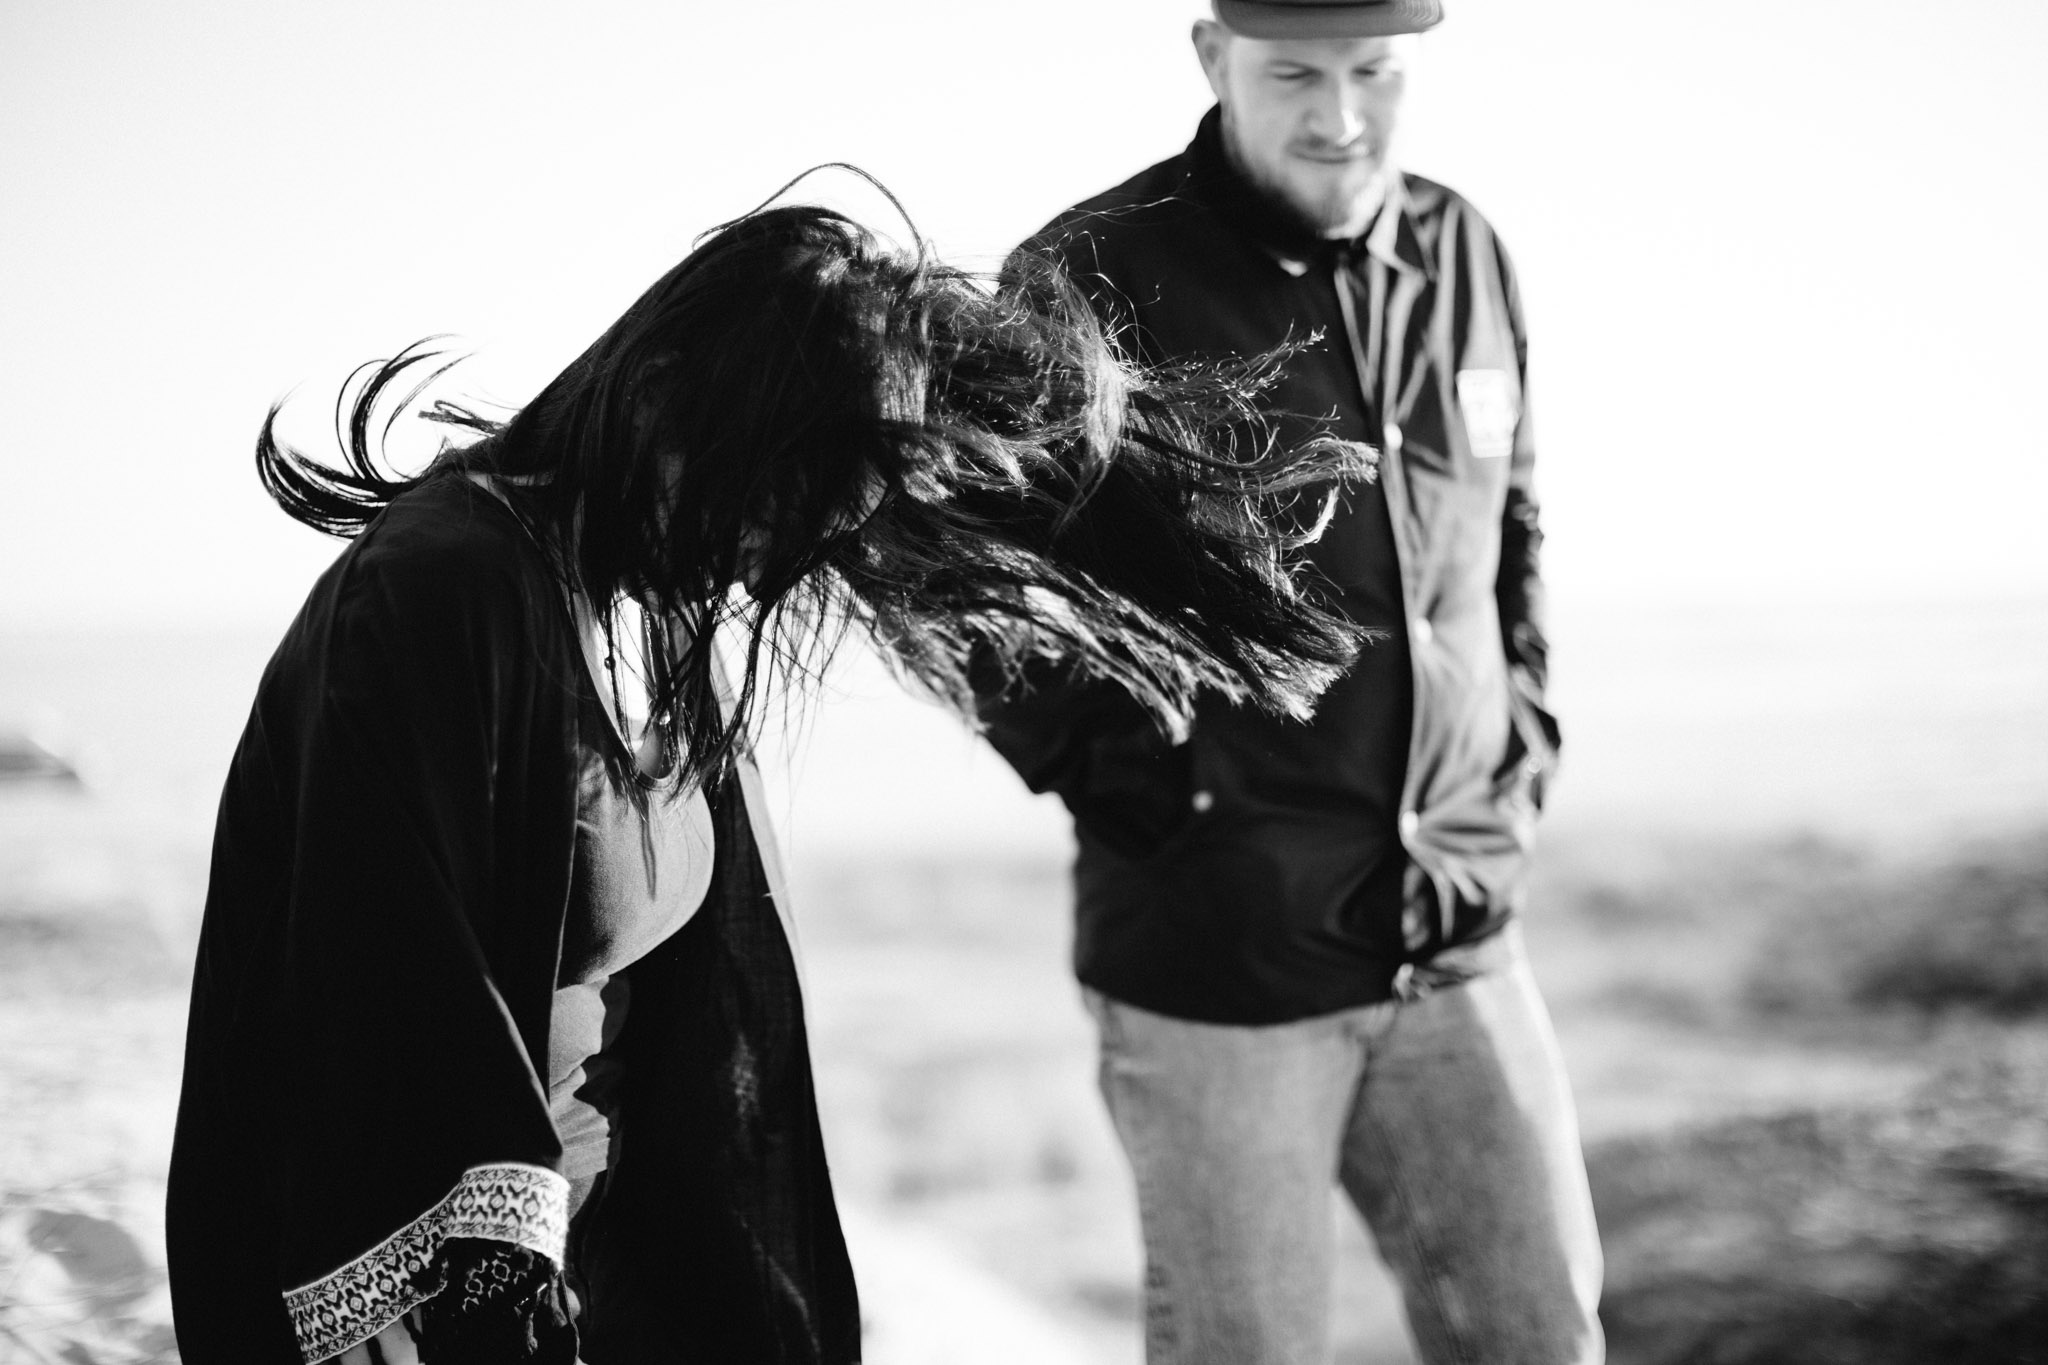 Sankt-Peter-Ording-Engagement-Pia-Anna-Christian-Wedding-Photography-KT-12.jpg